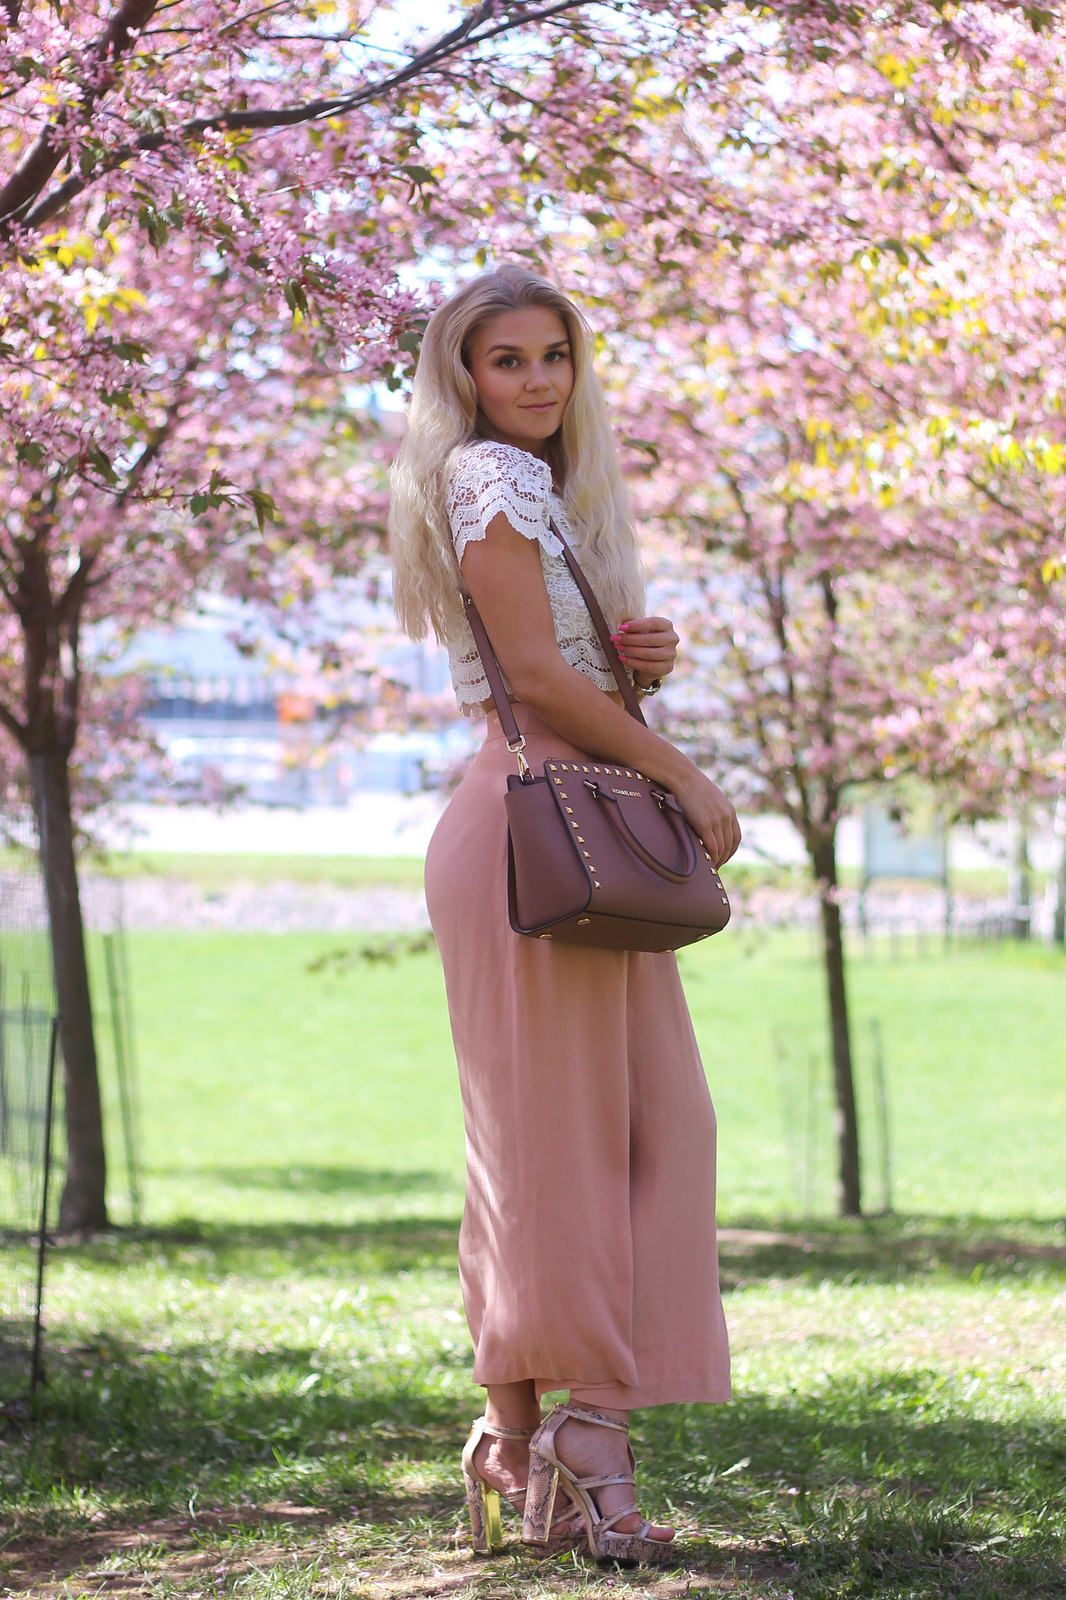 MY FAVORITE SPRING OUTFIT - CULOTTES & LACE CROP TOP